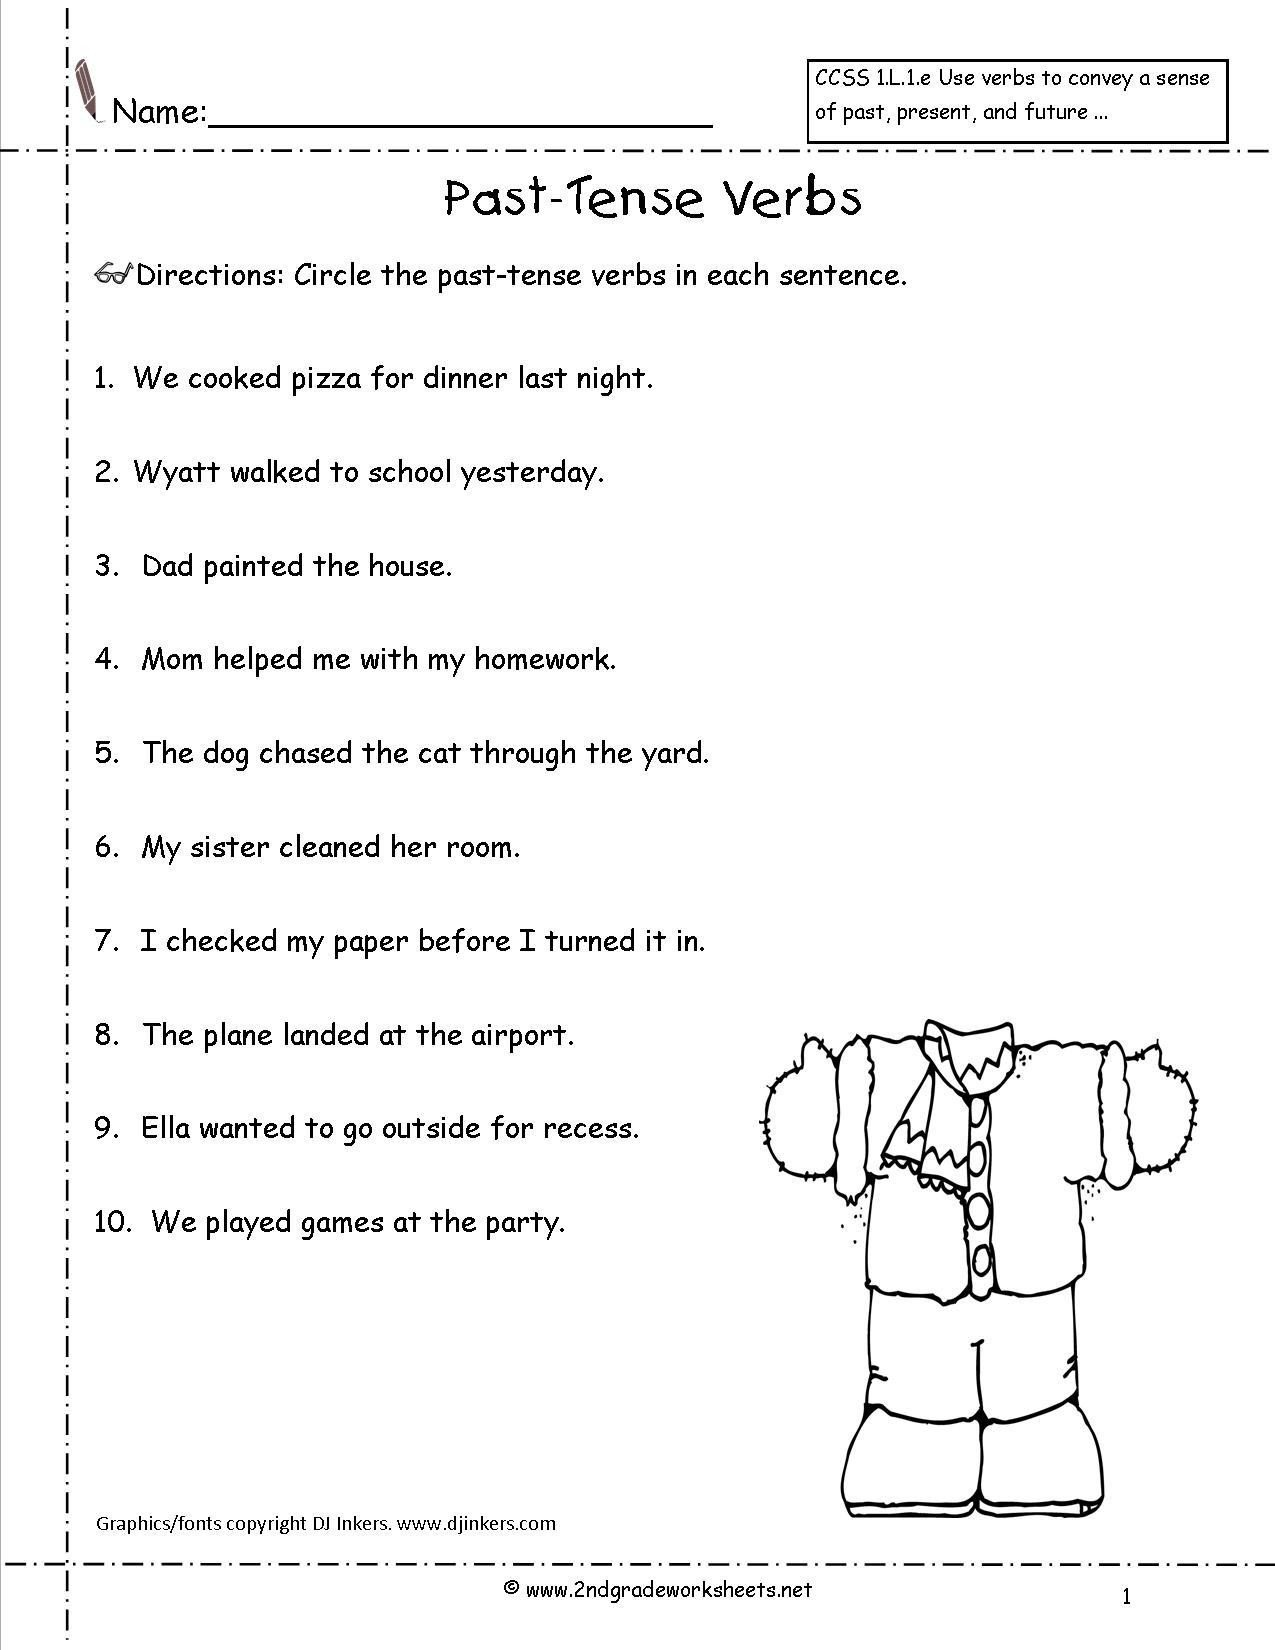 past tense verbs worksheets 2nd grade